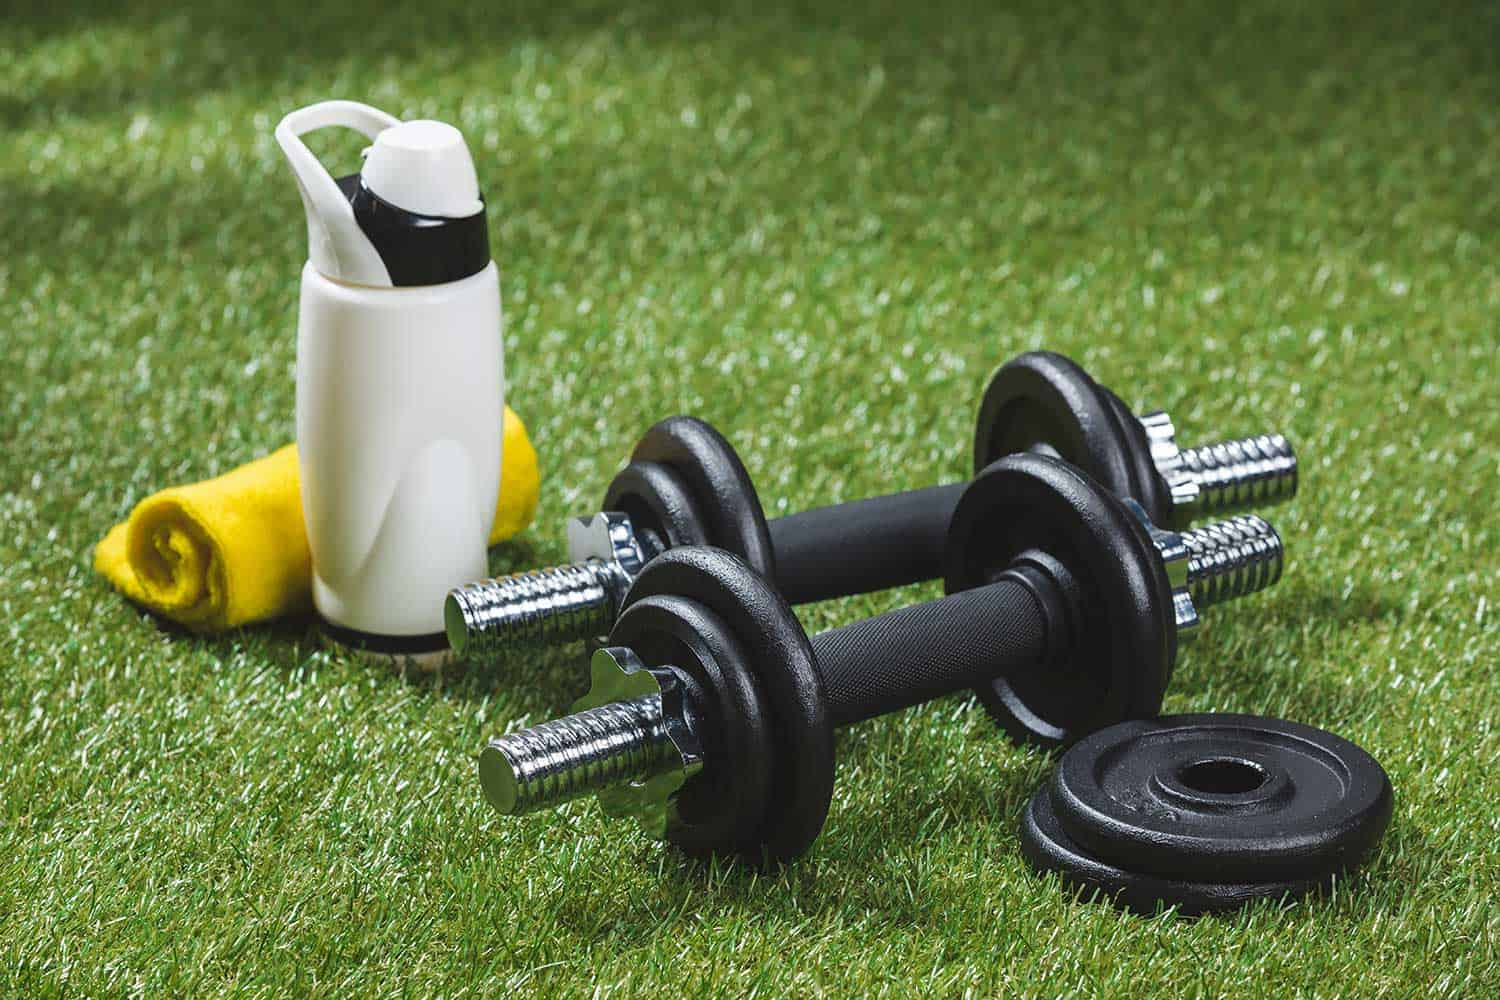 Dumbbells with weight plates and bottle of water with towel on grass